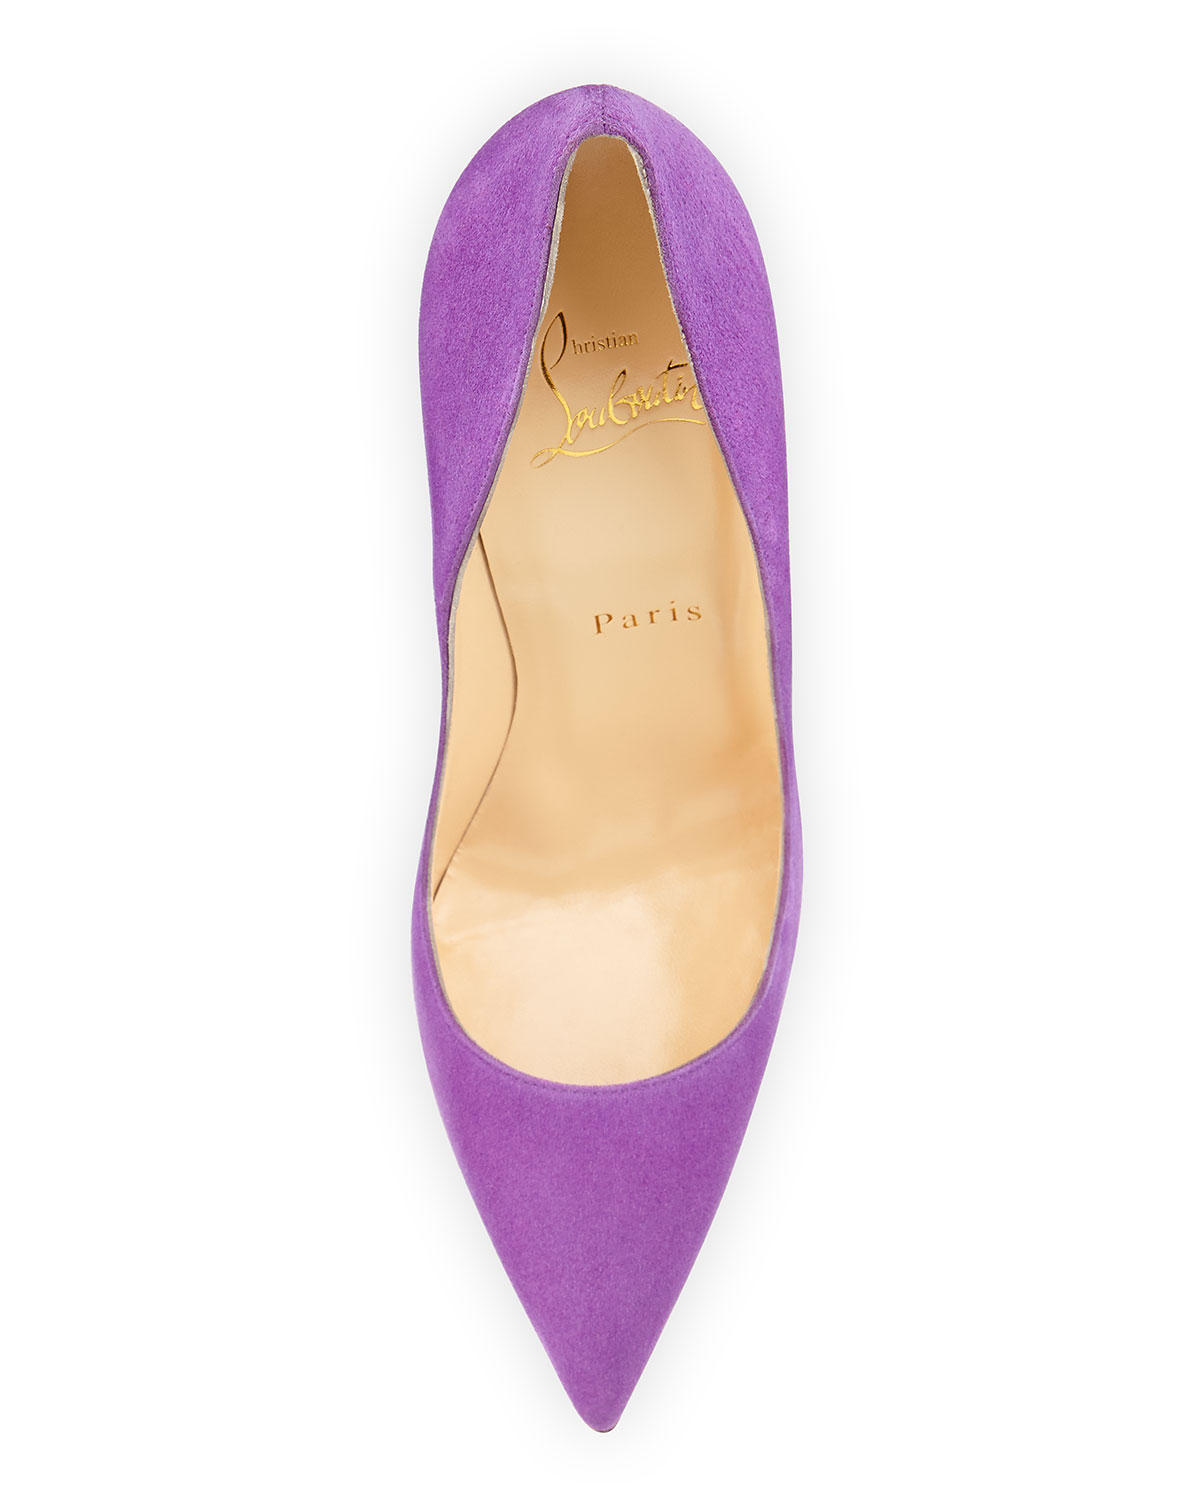 Christian louboutin So Kate Suede Red Sole Pump in Purple ...